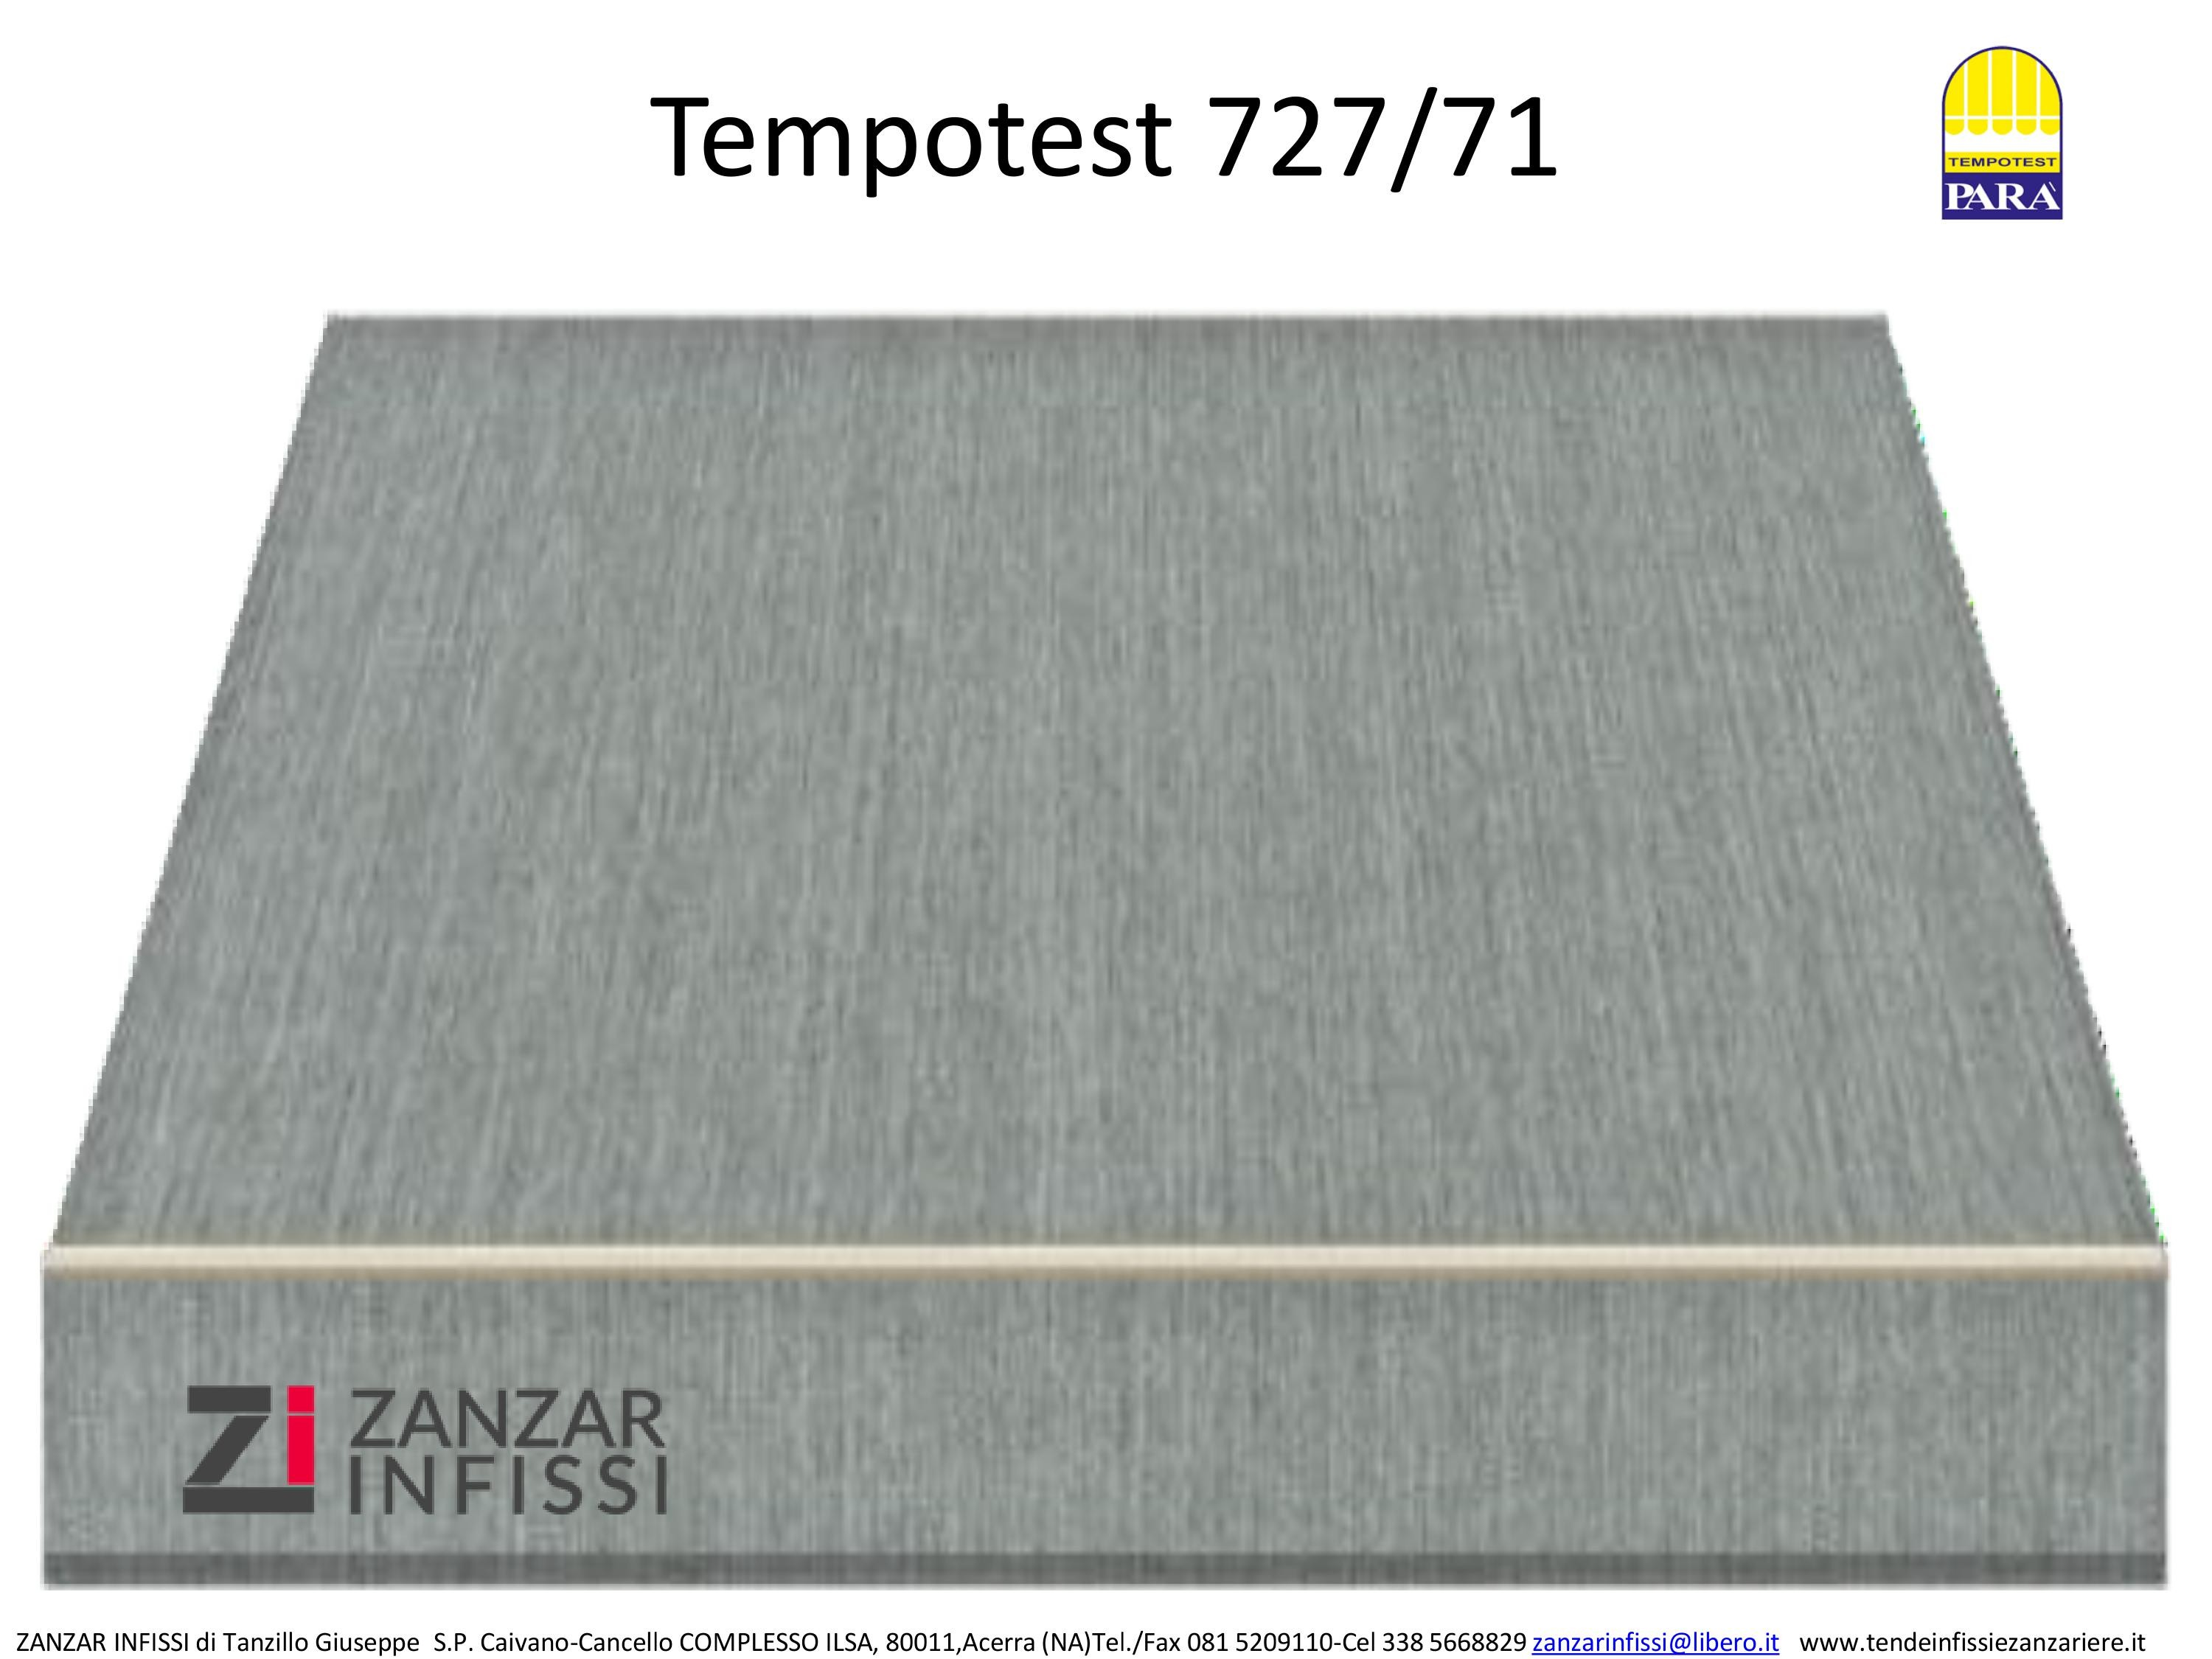 Tempotest 727/71